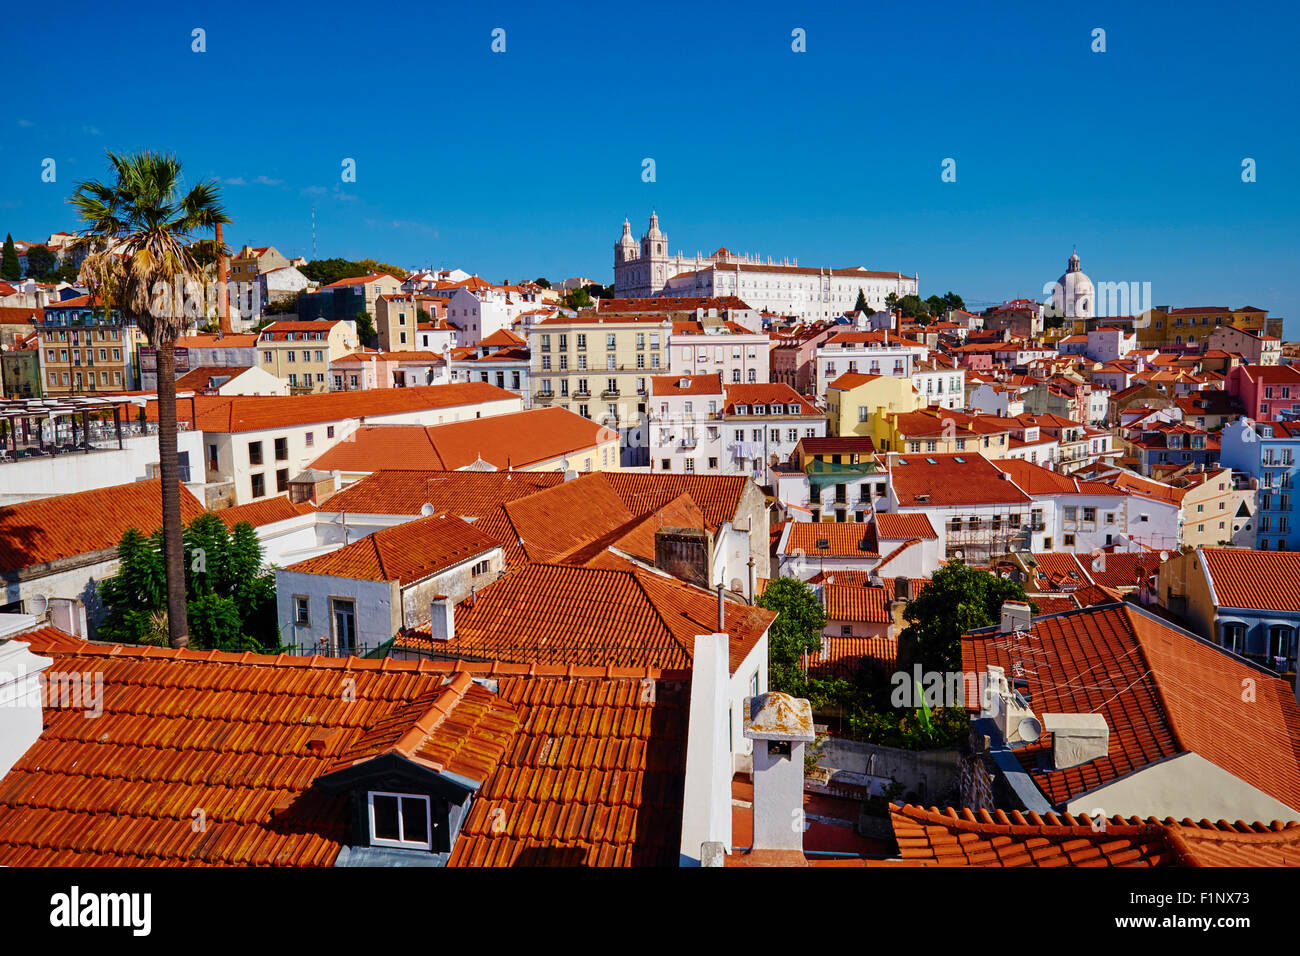 Portugal, Lisbon, Alfama from Santa Luzia belvedere, view on Sao Vicente de Fora monastery and National Pantheon Stock Photo